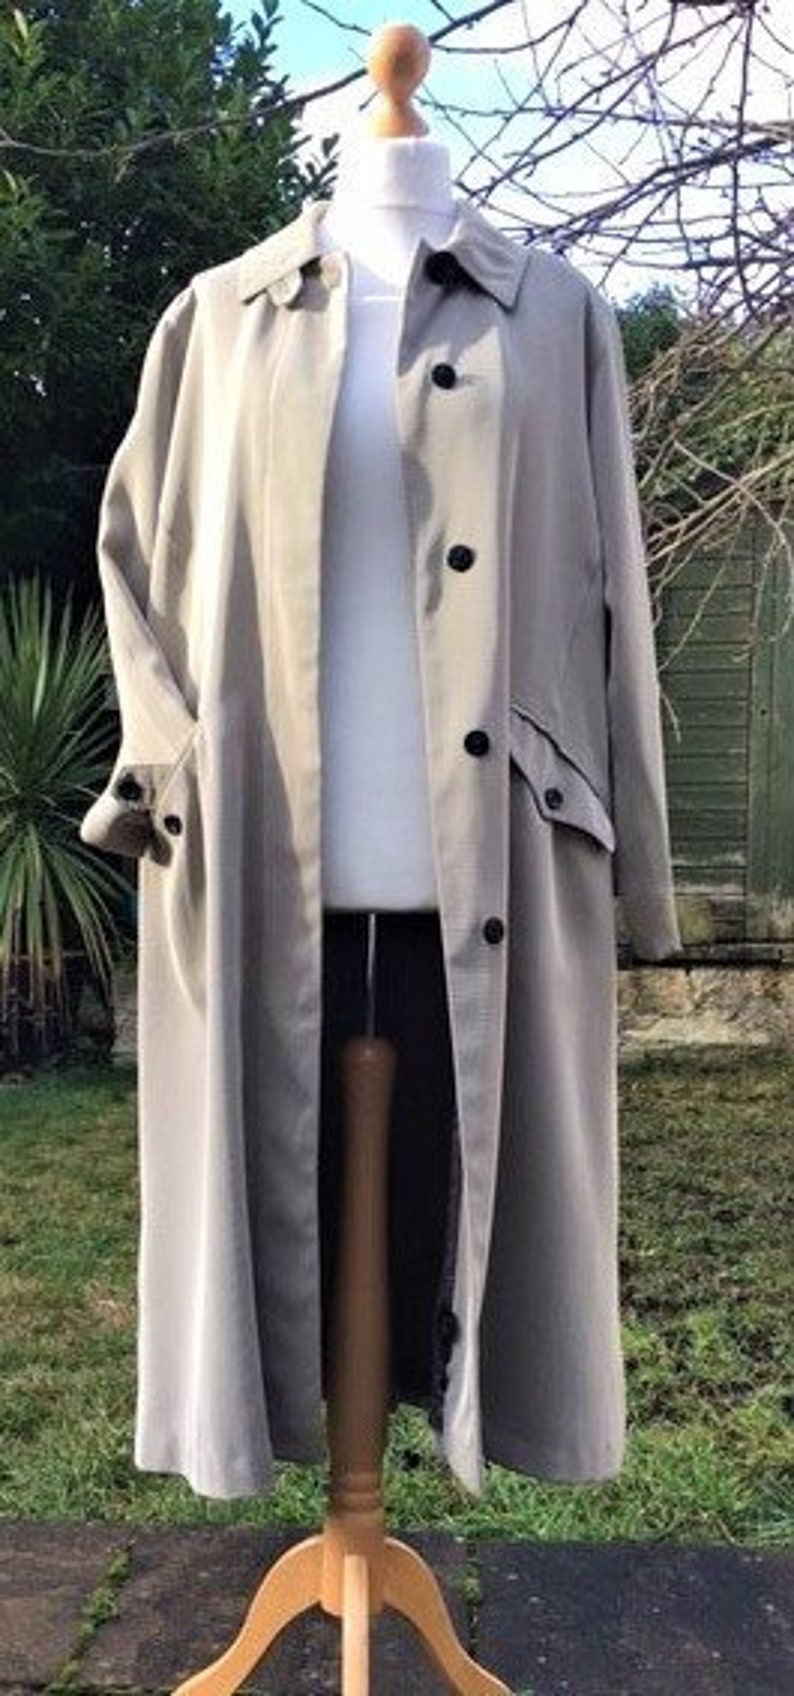 Andie Macdowell Bra Size 1980's trench/duster coat uk 12-14, us 8-10. 1980's long taupe  raincoat.classic 1980's long loose fitting coat. underwraps vintage raincoat